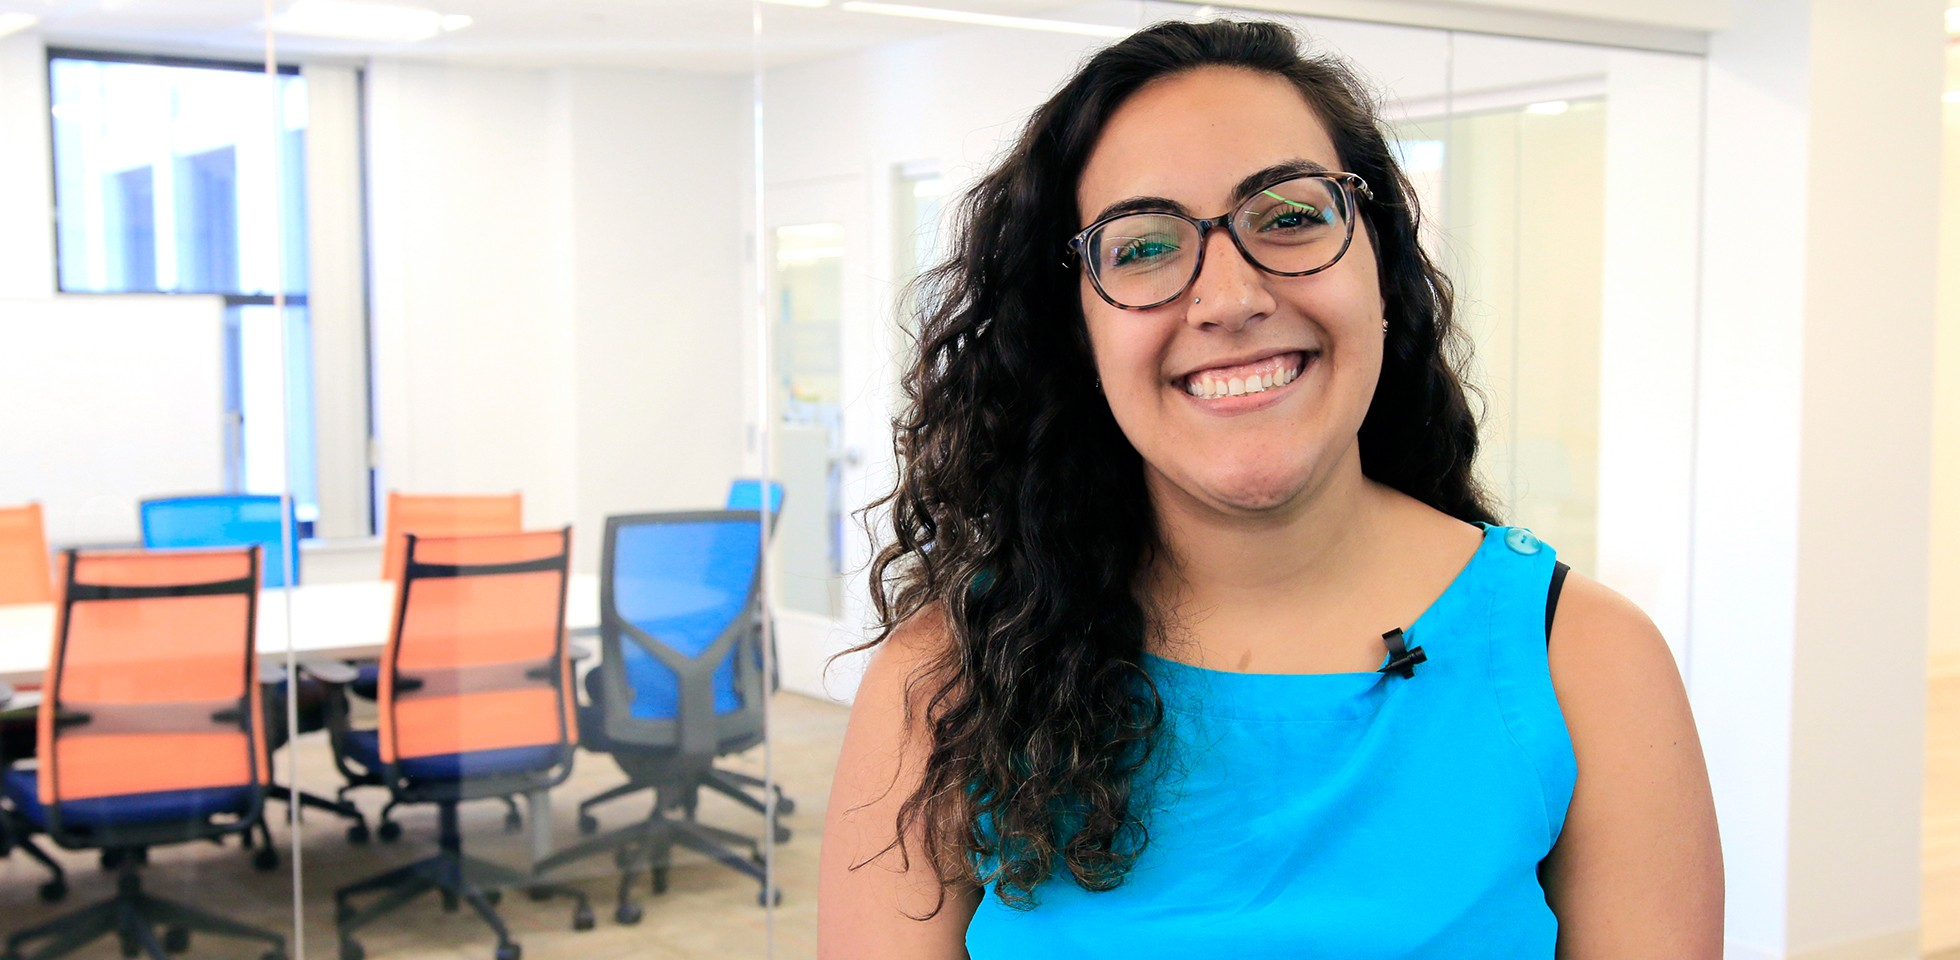 Beatriz Bolaños, Technical Support Manager  - Ellevation Education Careers